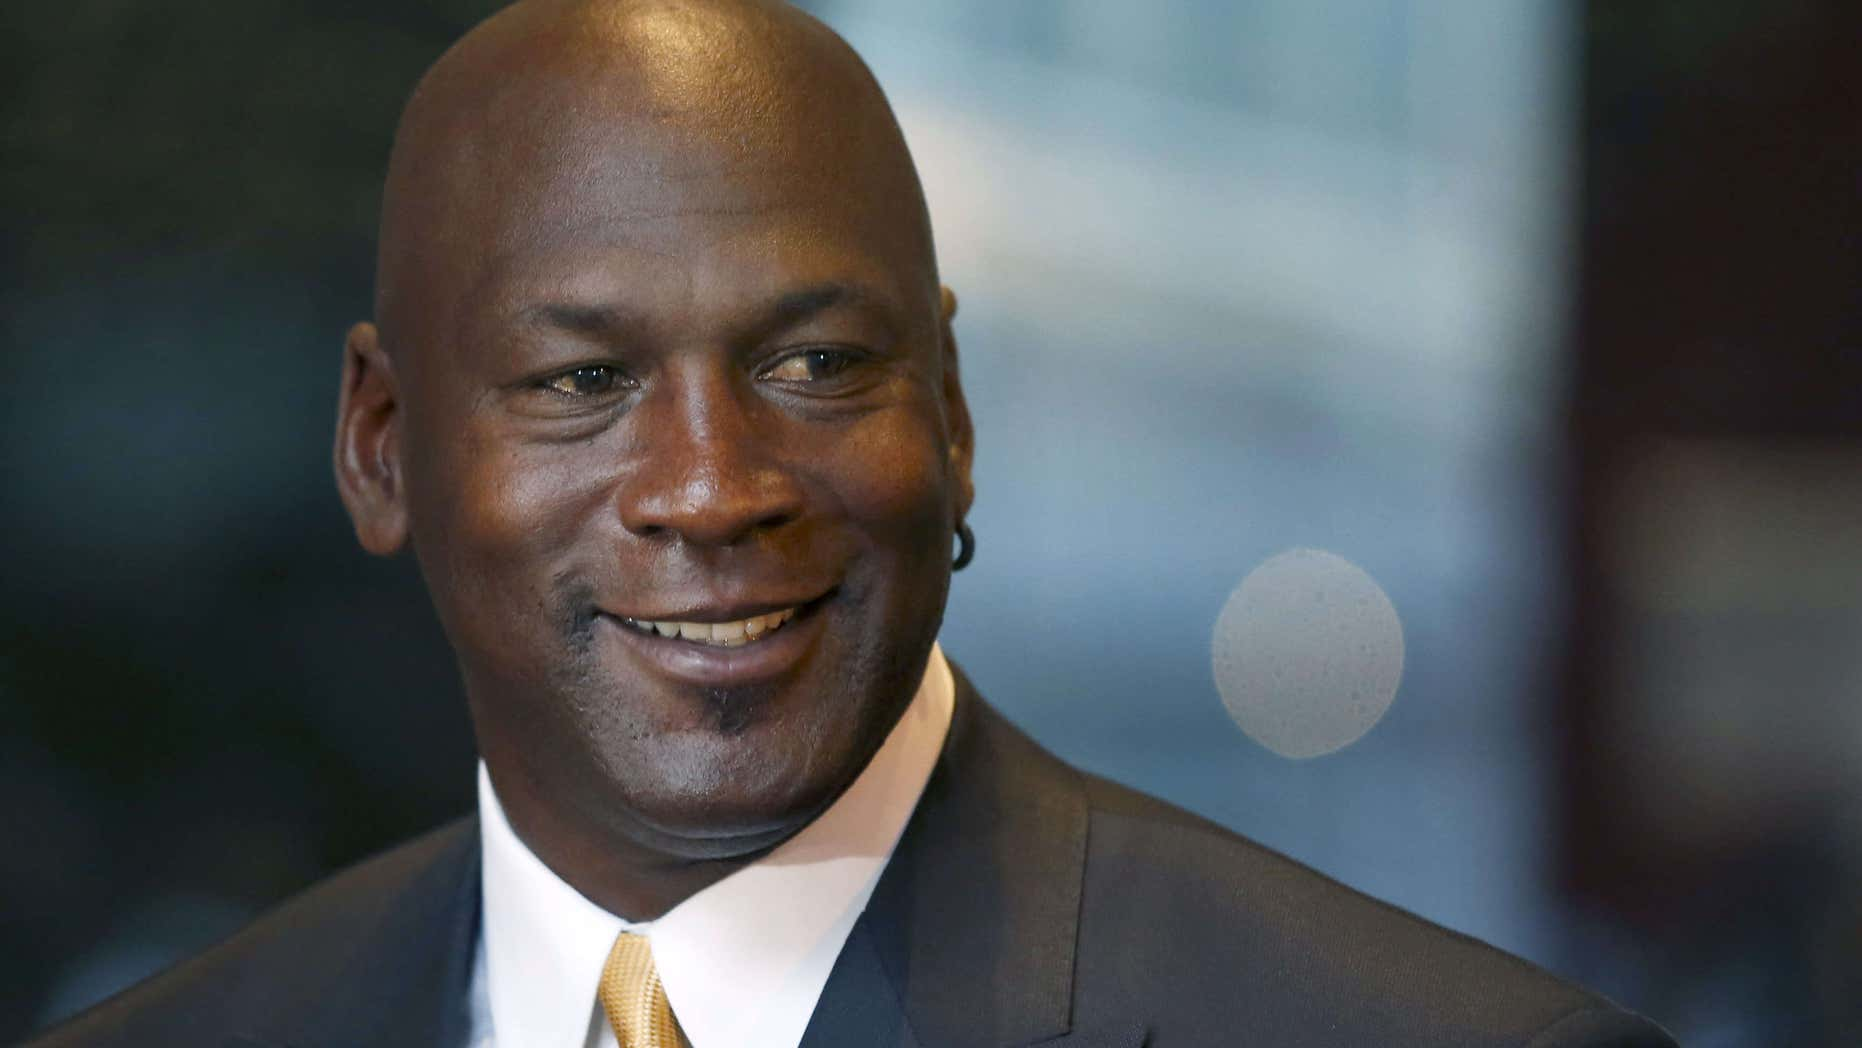 Aug. 21, 2015: Michael Jordan smiles at reporters after a jury ordered a defunct grocery store chain to pay him $8.9 million for using his name without permission.